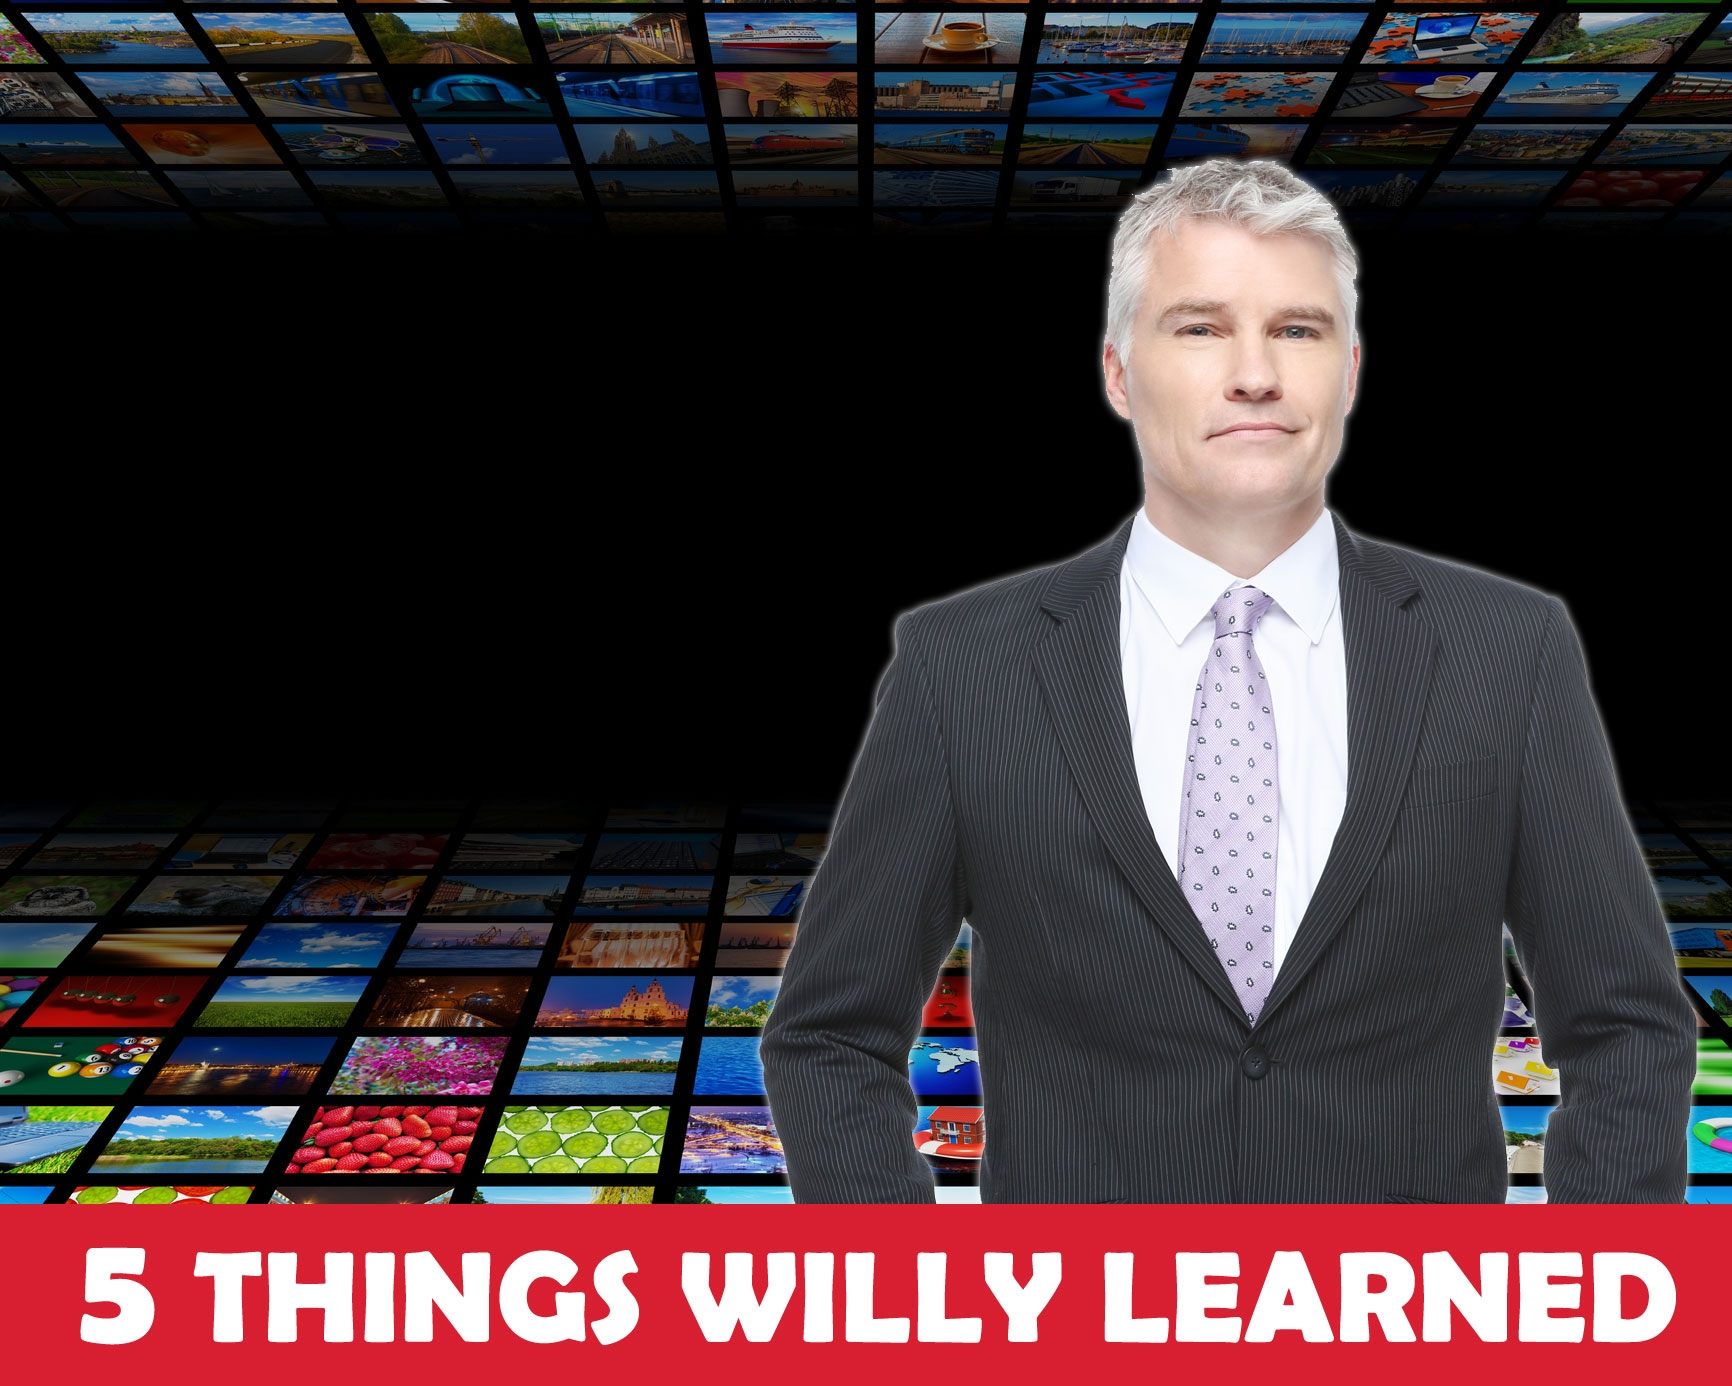 5 Things Willy Learned This Week